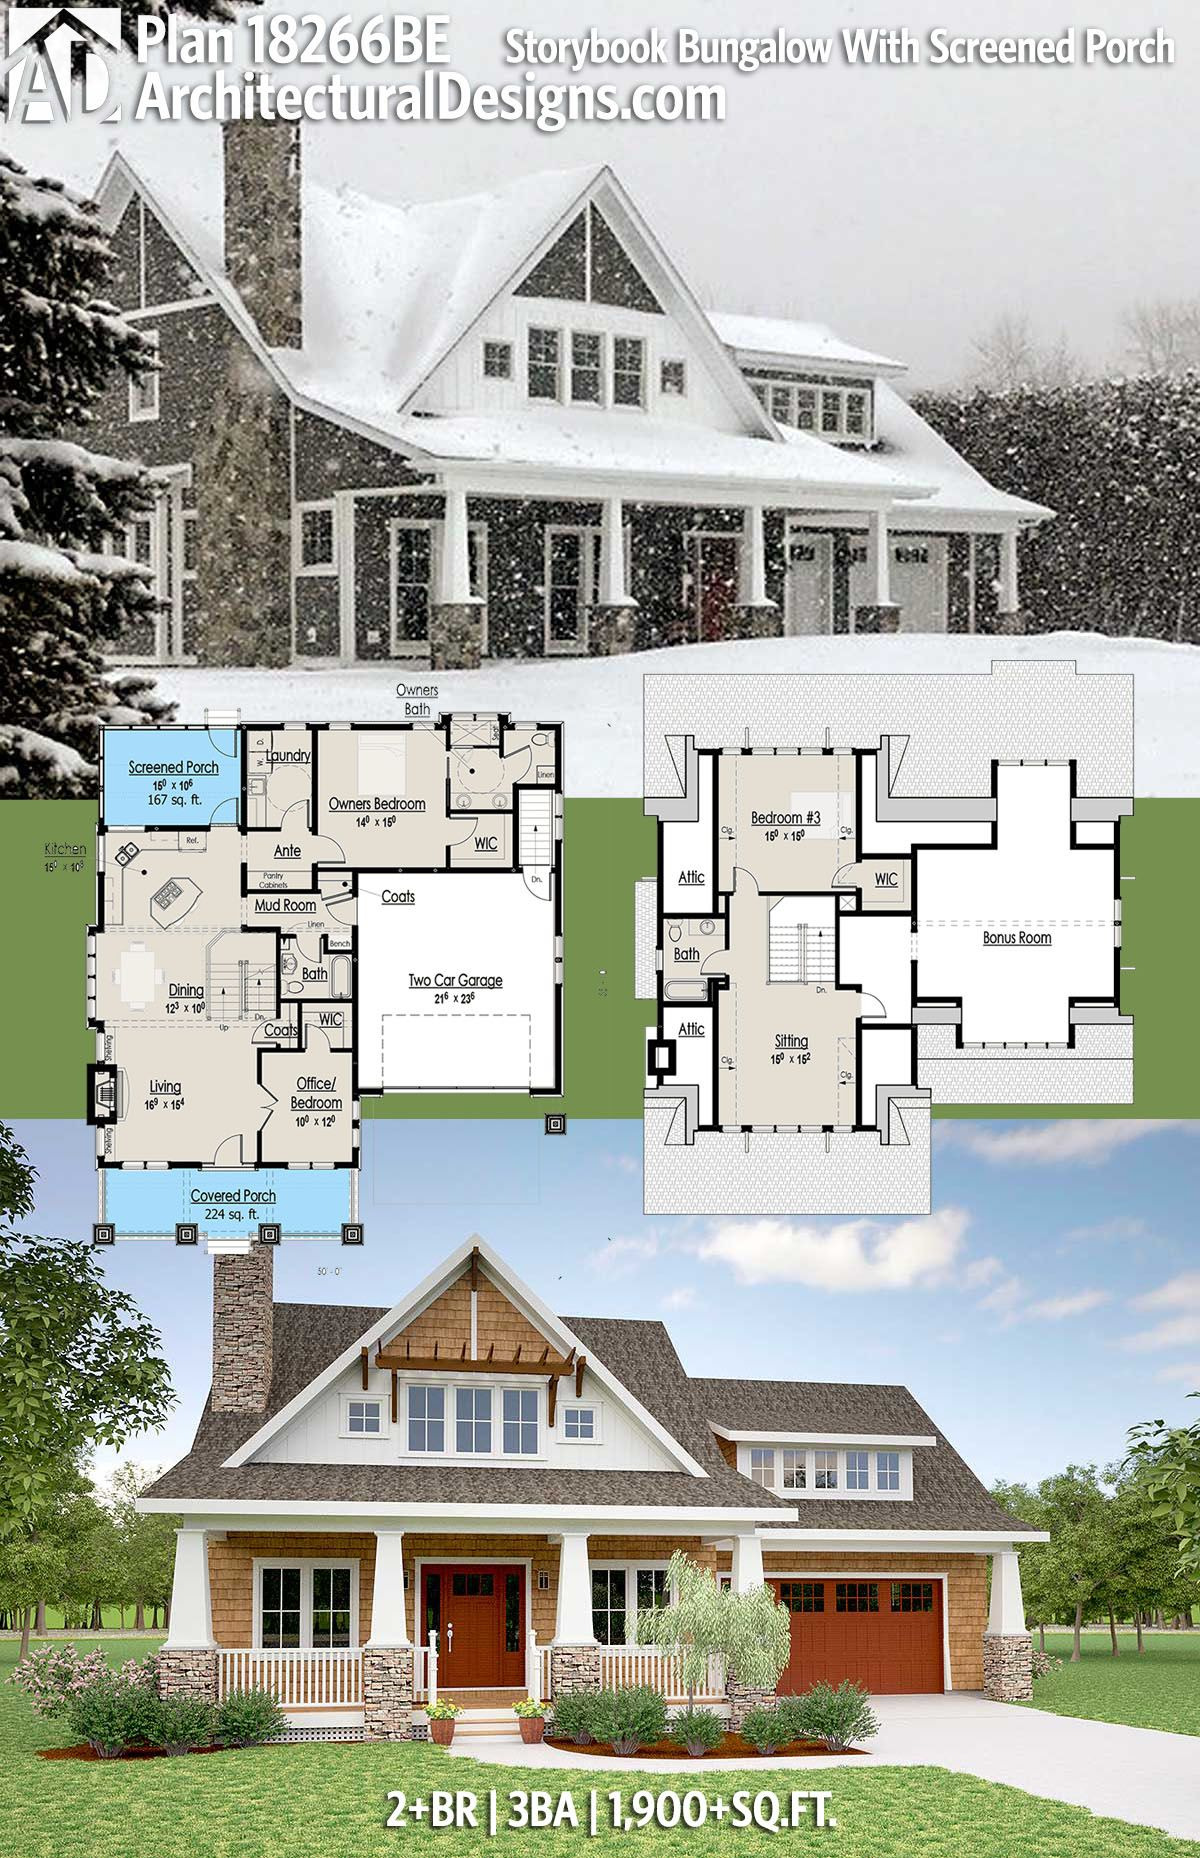 House Plans Screened Porch Inspirational Plan Be Storybook Bungalow with Screened Porch